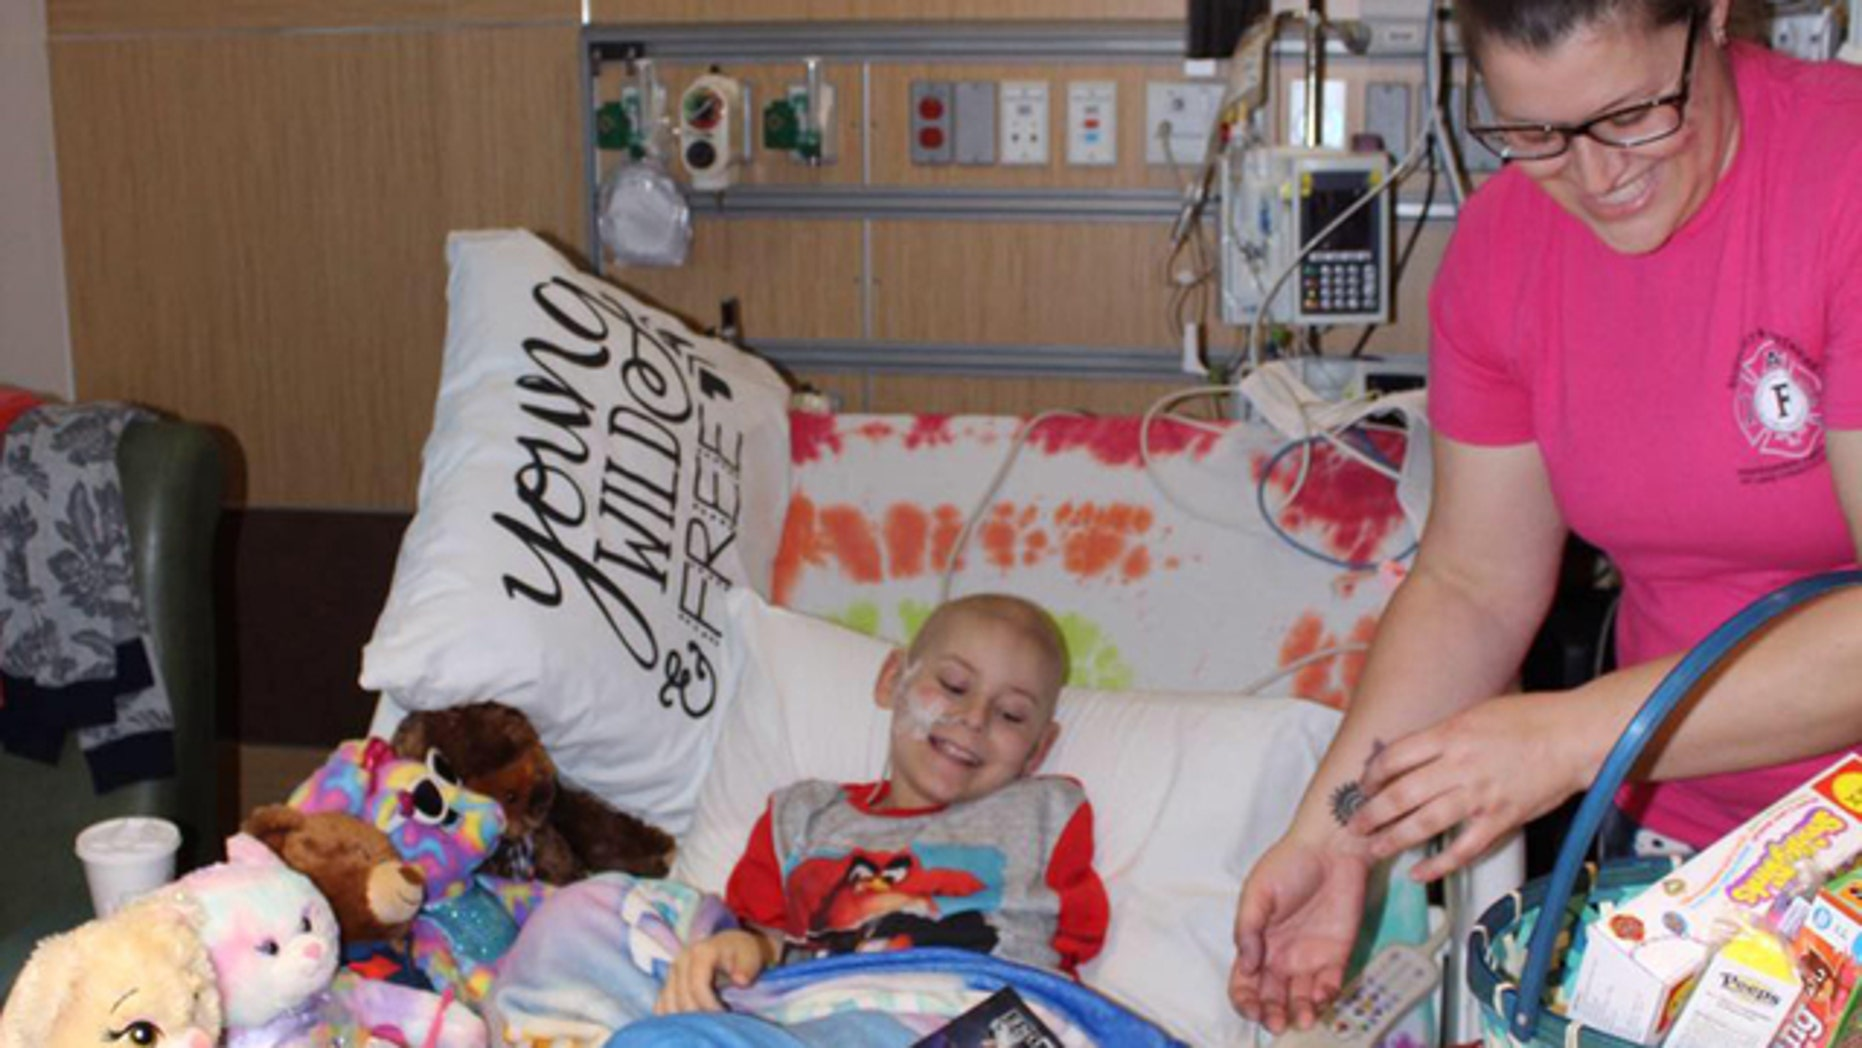 Jay Ryon was diagnosed with leukemia when he was 7 years old.